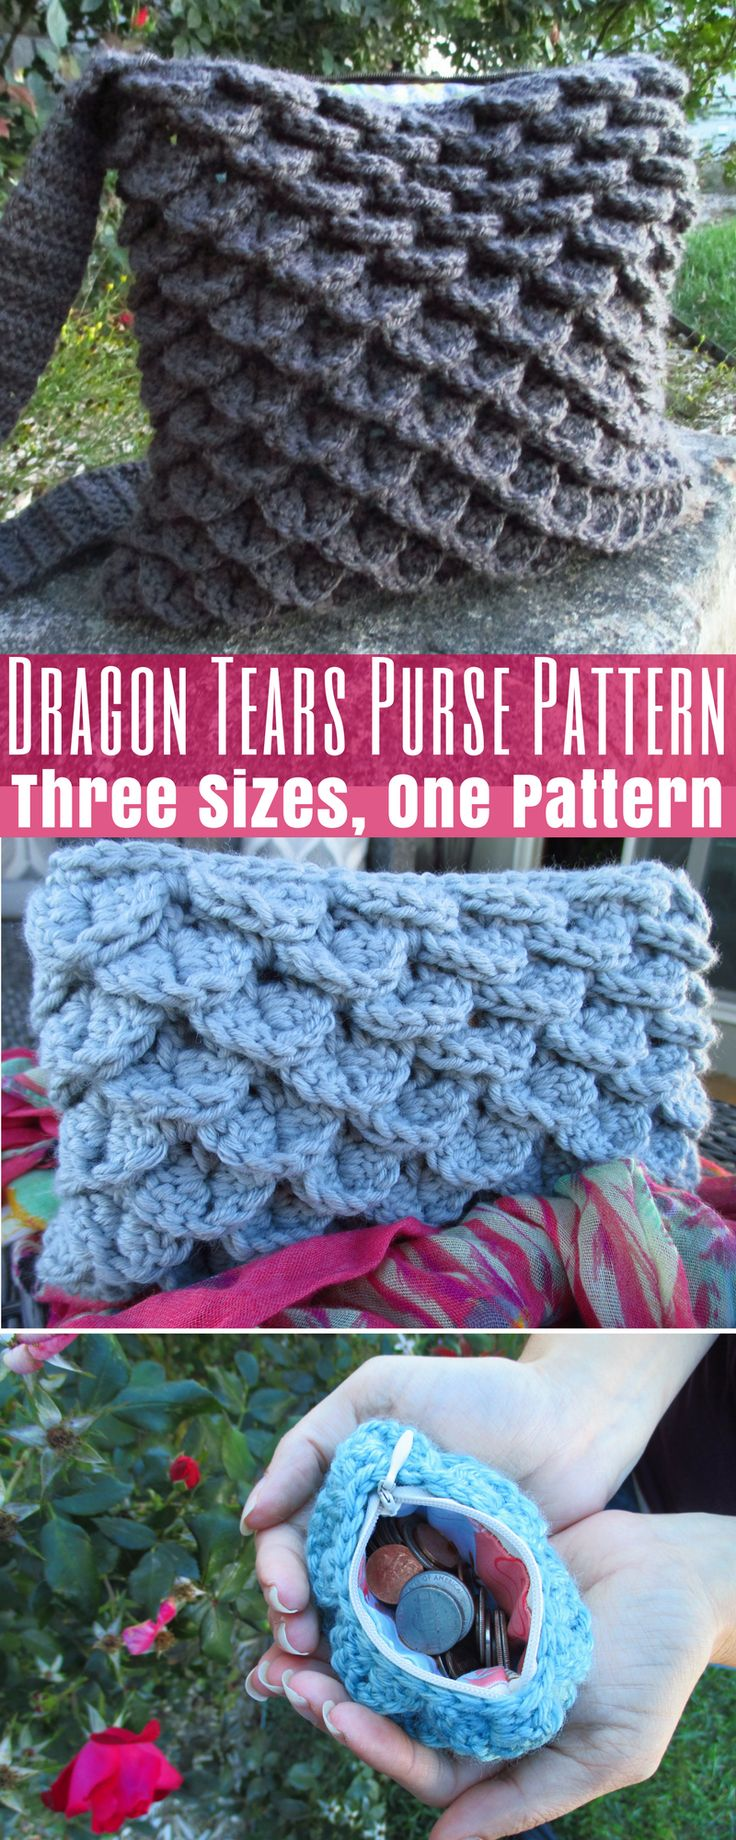 Dragon Tears 3-in-1 Purse Crochet Pattern: Coin Purse : Clutch : Full Size Purse http://hearthookhome.com/dragon-tears-3-in-1-purse-crochet-pattern/?utm_campaign=coschedule&utm_source=pinterest&utm_medium=Ashlea%20K%20-%20Heart%2C%20Hook%2C%20Home&utm_content=Dragon%20Tears%203-in-1%20Purse%20Crochet%20Pattern%3A%20Coin%20Purse%20%3A%20Clutch%20%3A%20Full%20Size%20Purse